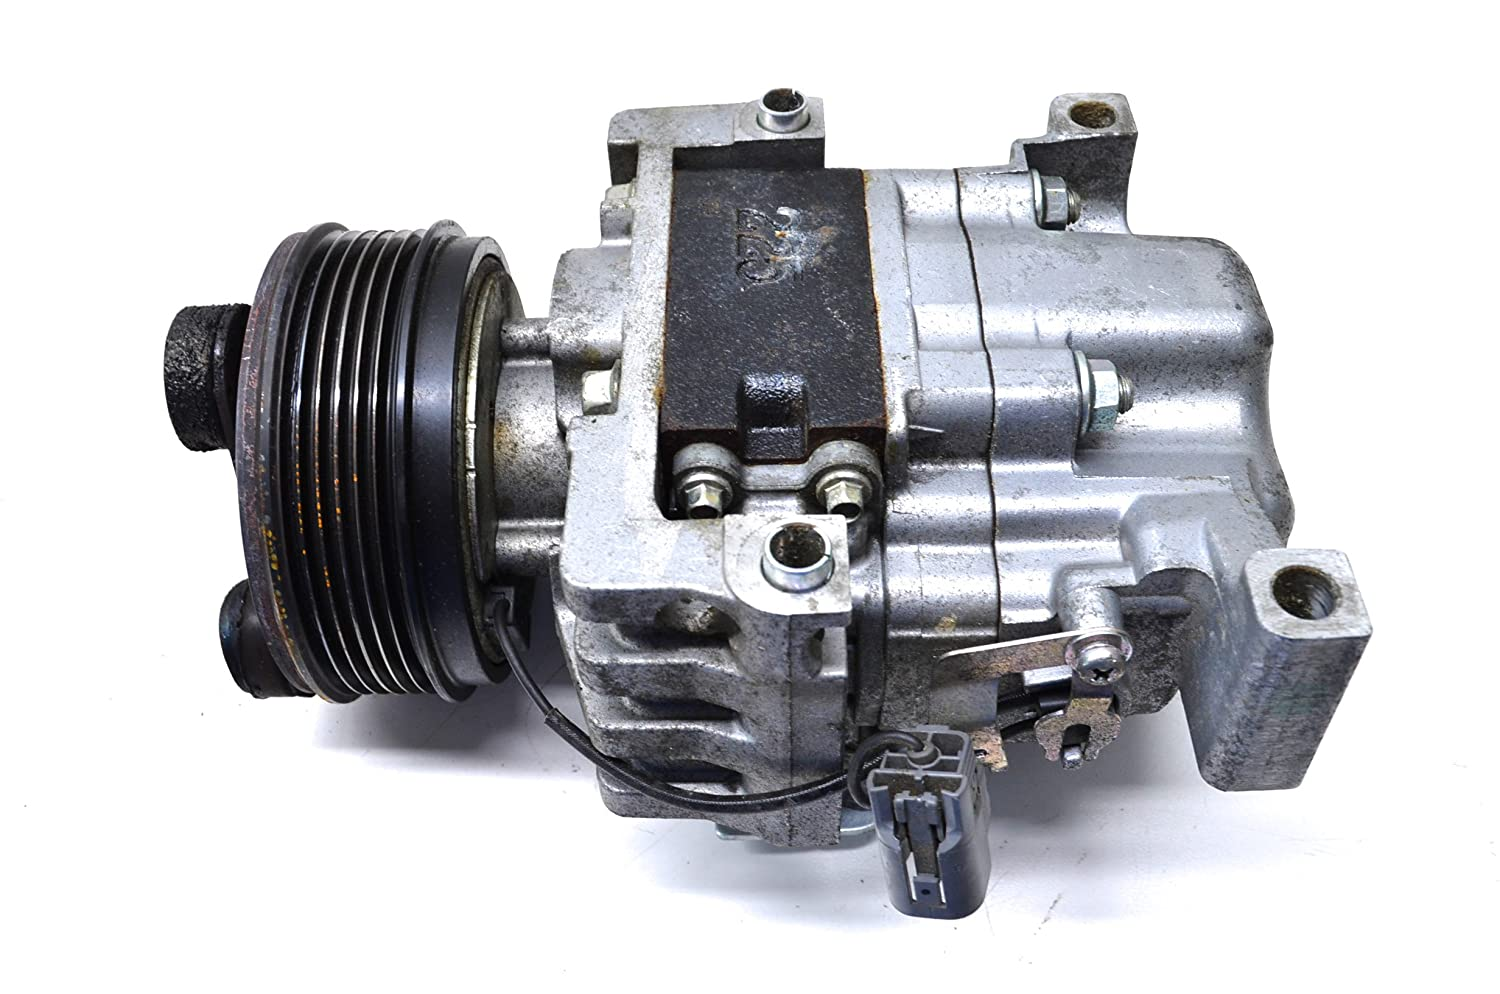 Amazon.com: New OEM Mazda CX-7 Factory A/C Compressor Assembly w/ belt EGY1-61-45Z: Automotive